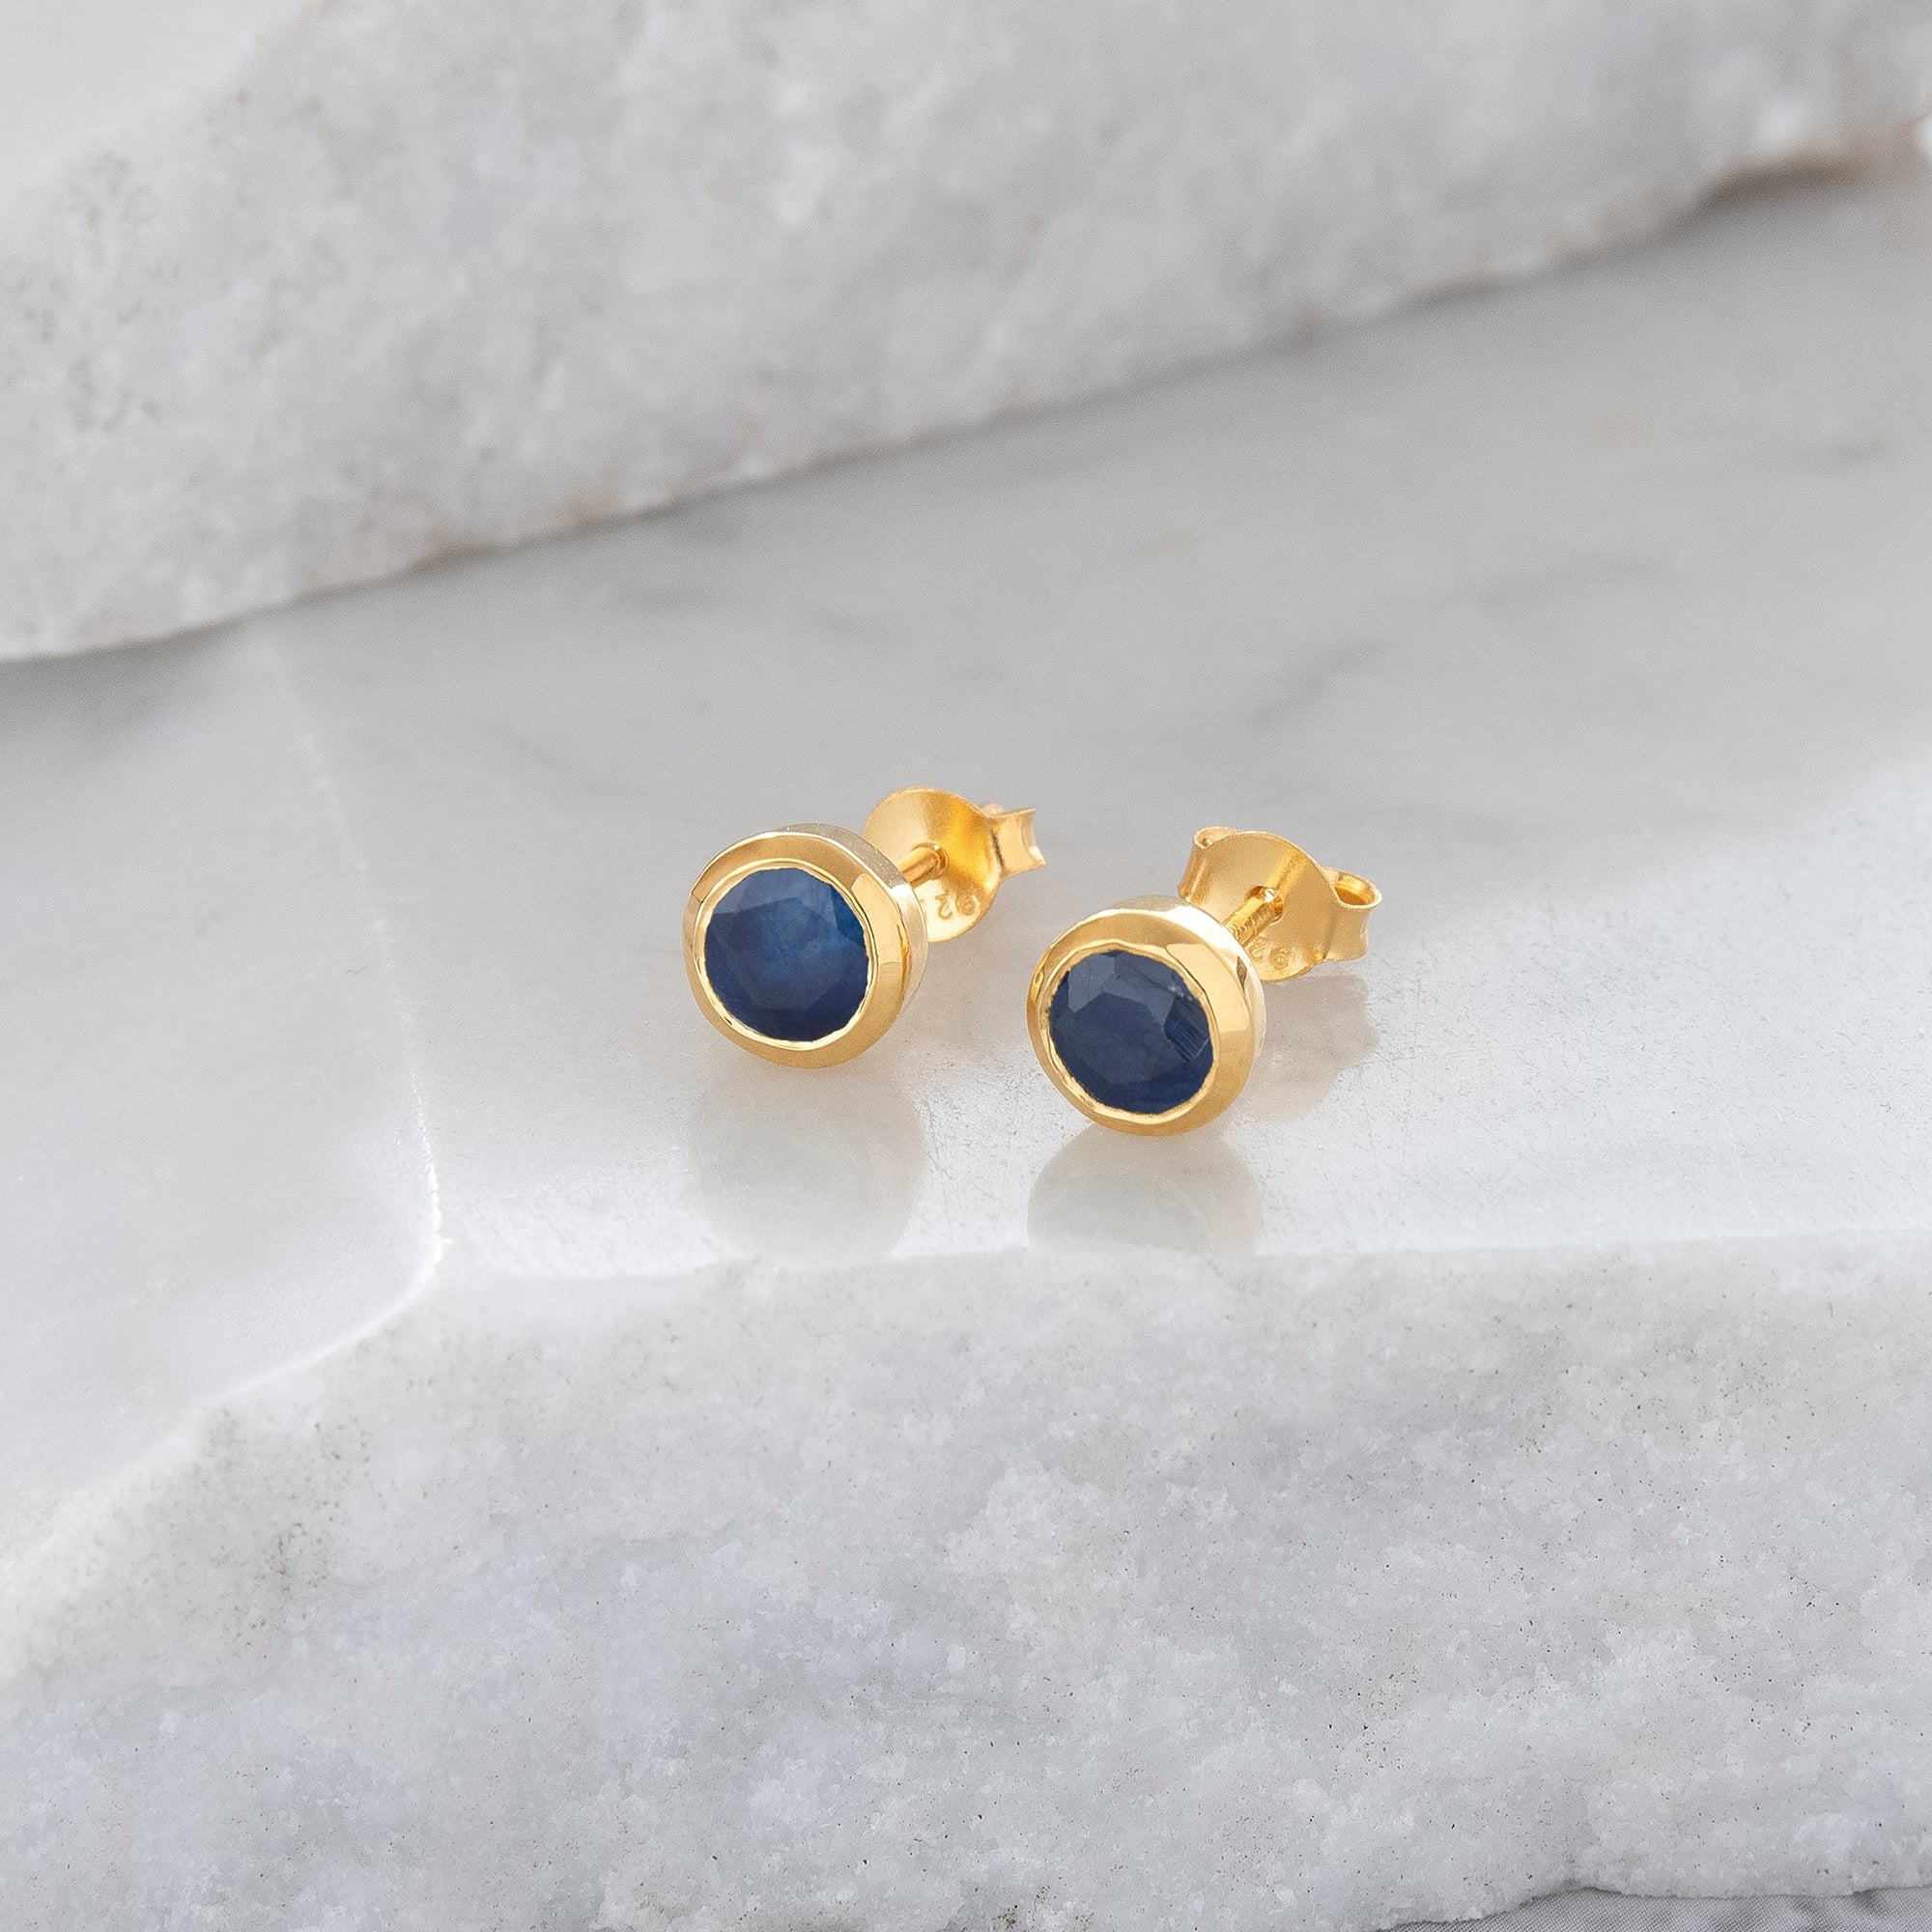 Birthstone Stud Earrings September: Sapphire and Gold Vermeil